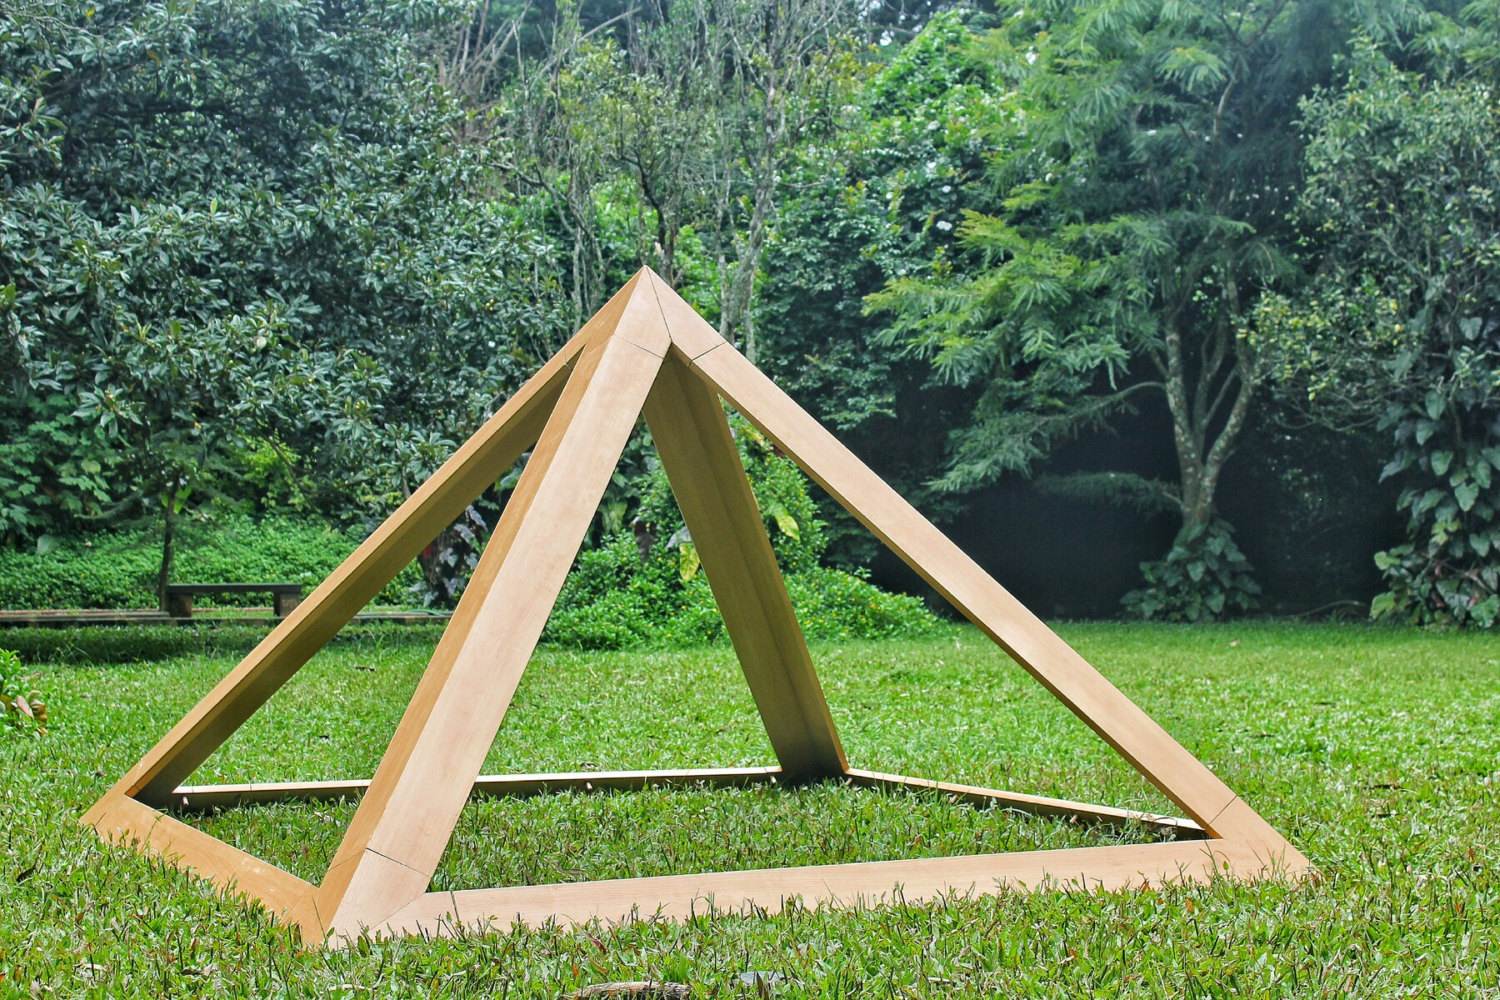 Wooden Meditation Pyramid 8 Base for Spiritual Healing Heavy Duty for Outdoors w